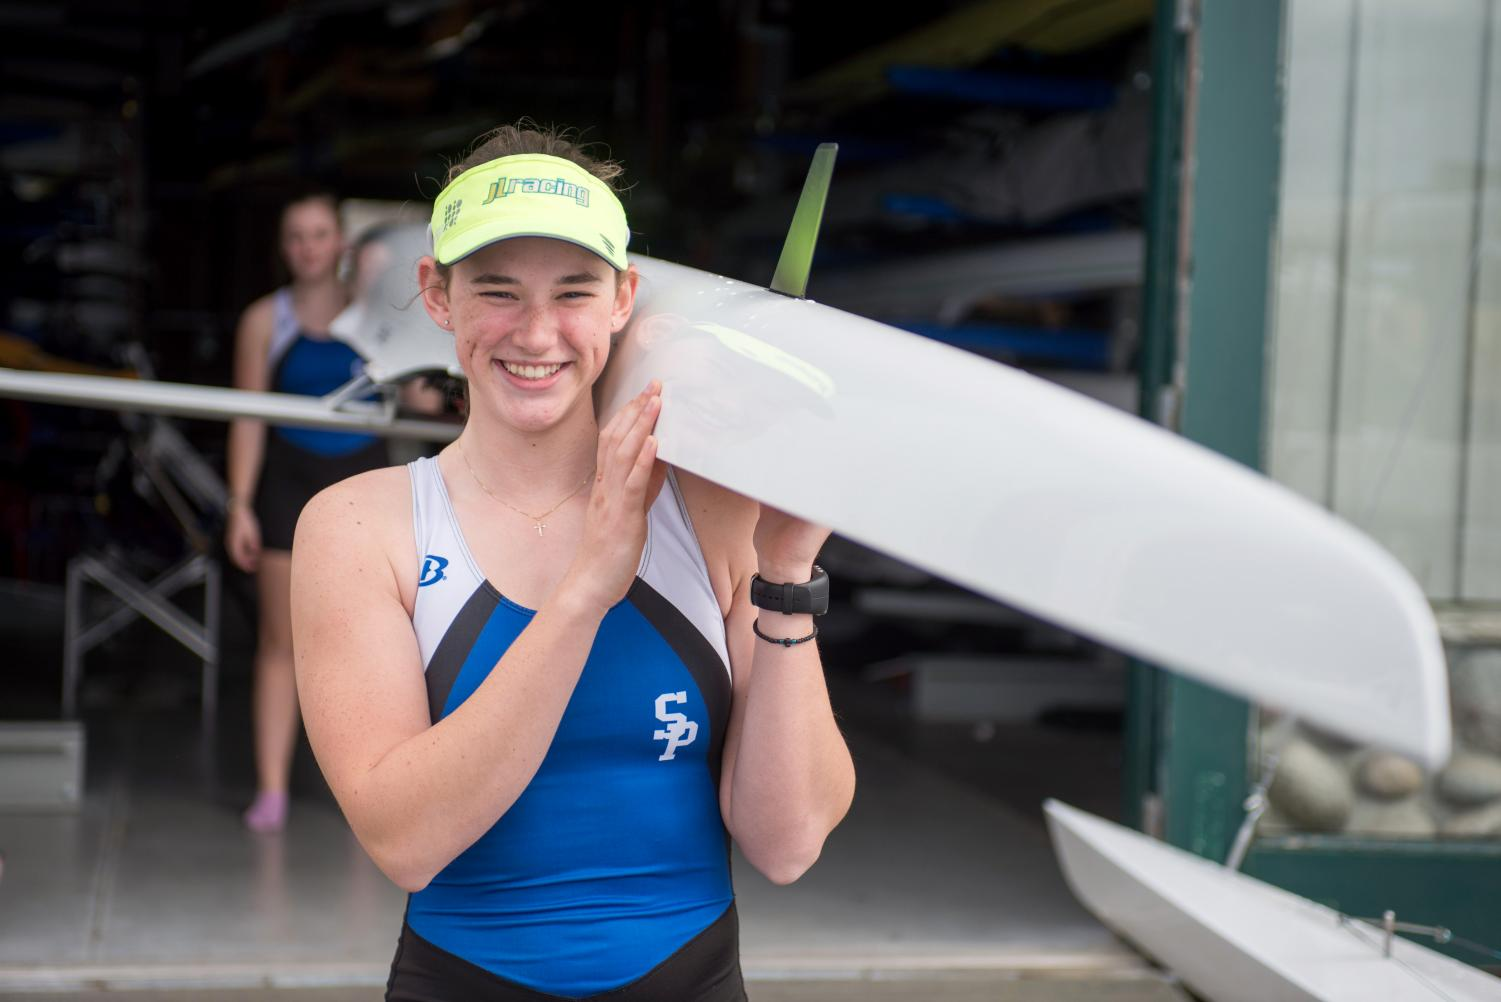 Emma Conaty carries her boat from the boat house. Conaty, who only started rowing two years ago, will be heading to WSU to pursue her rowing career.